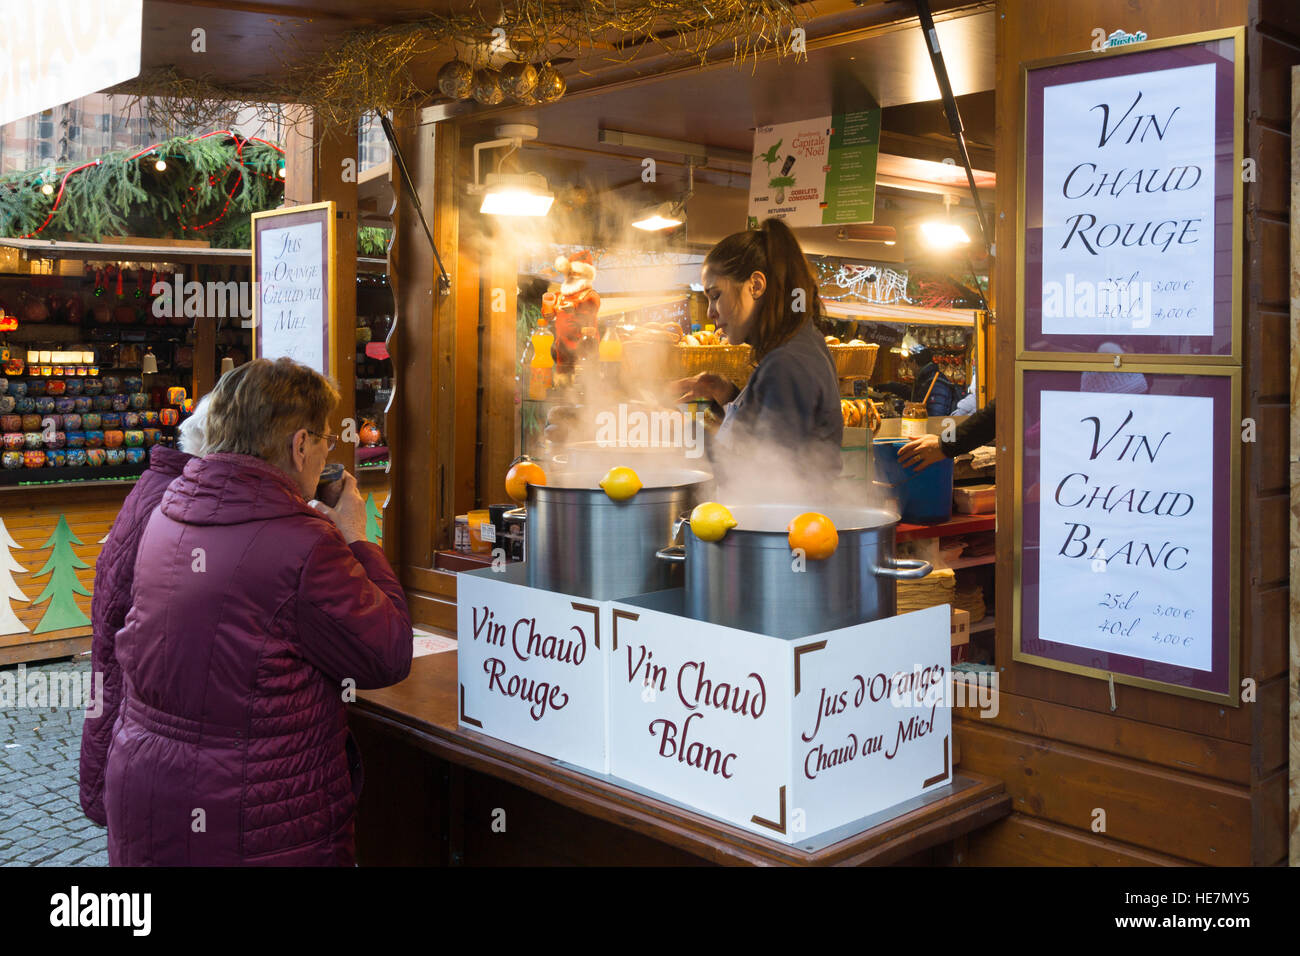 mulled wine stand photos mulled wine stand images alamy. Black Bedroom Furniture Sets. Home Design Ideas